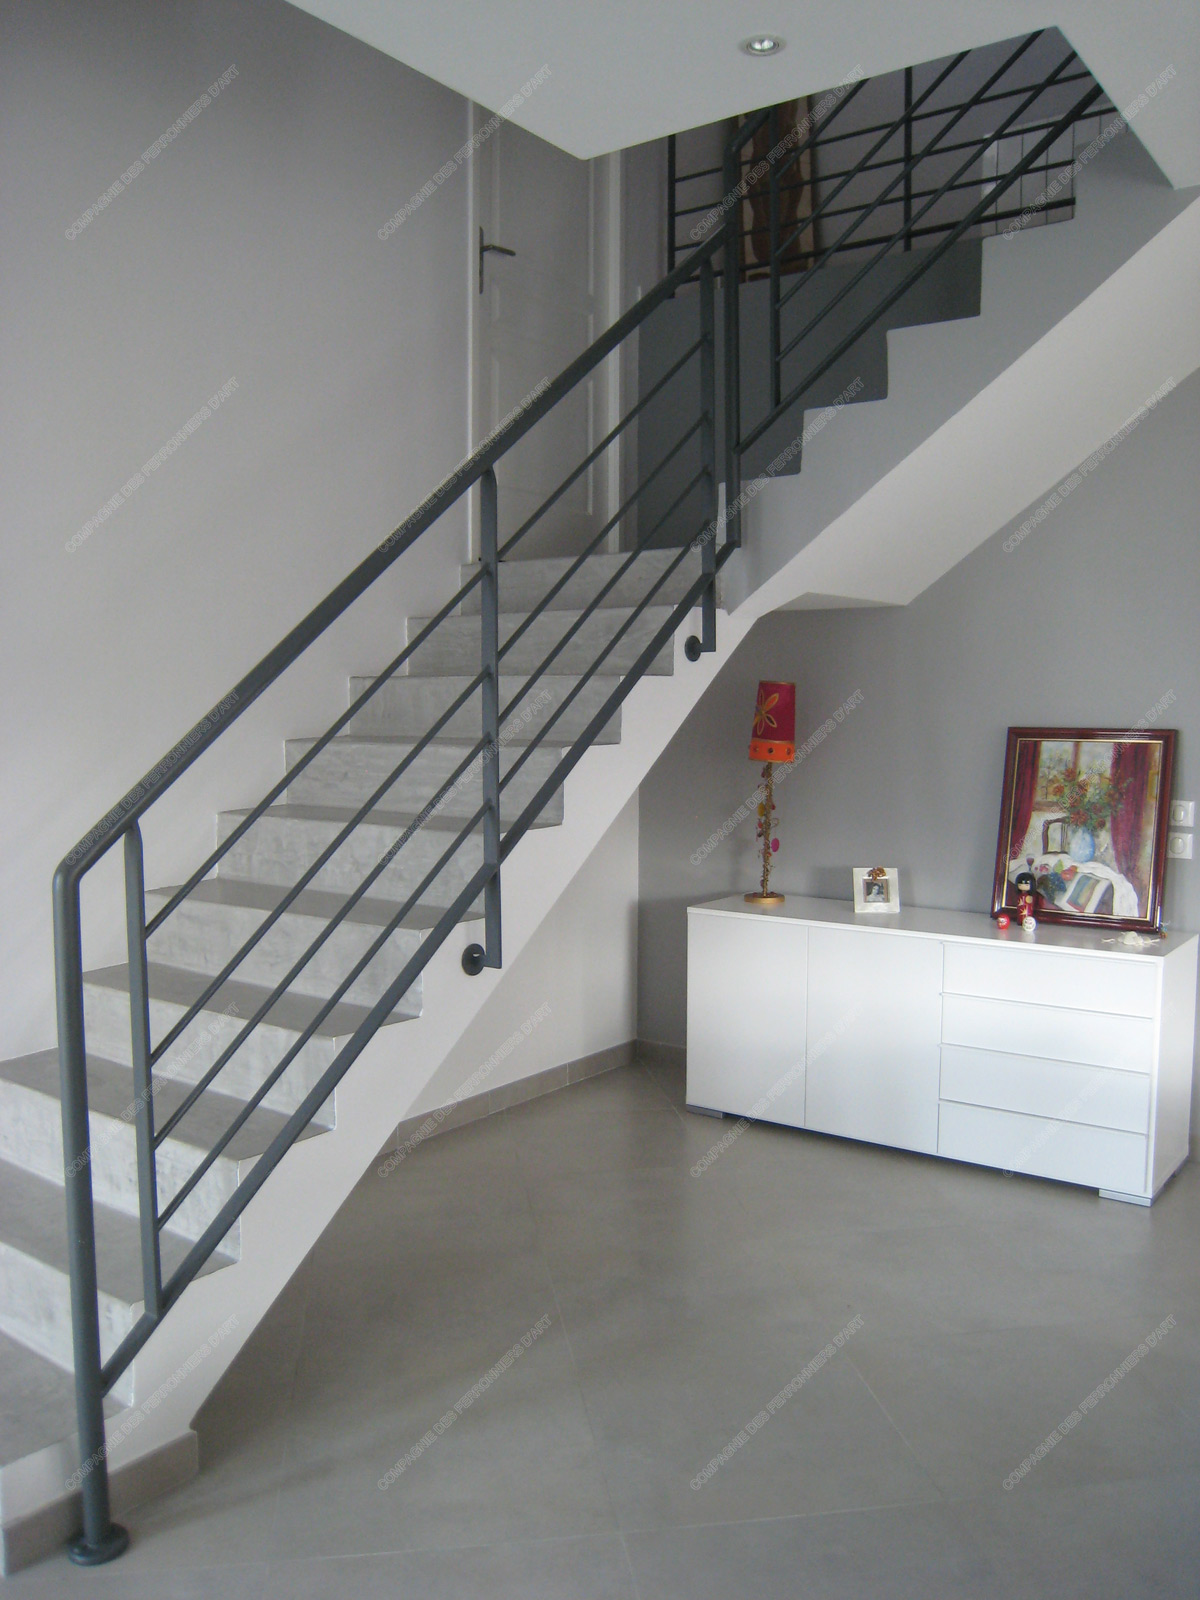 Rampes d 39 escalier en fer forg design fonctionnel mod le for Rampe d escalier moderne